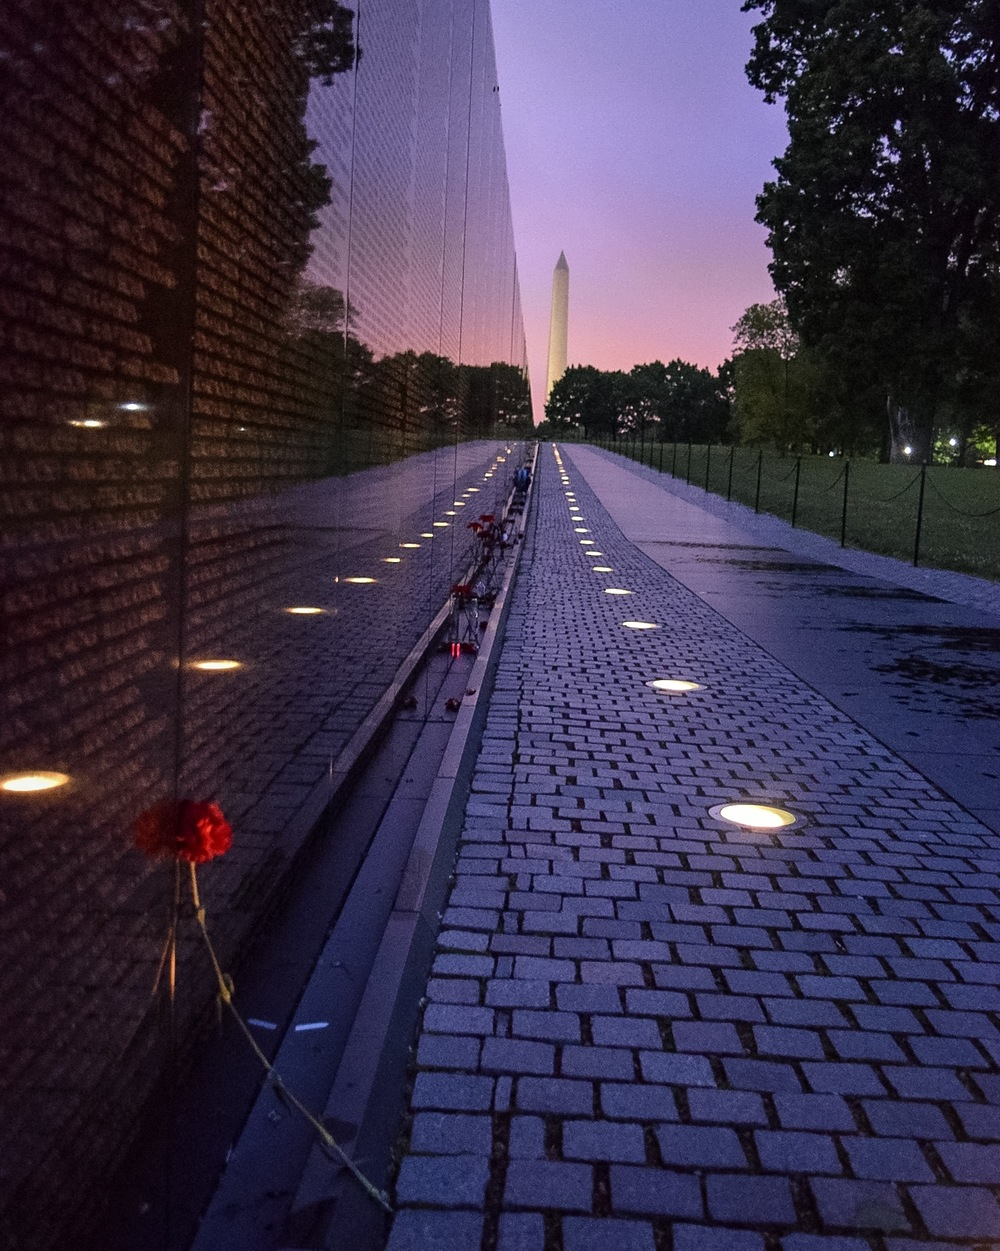 The Vietnam Veterans Memorial contains the names of the more than 53,000 Americans killed during the Vietnam War, and includes from than 1,200 missing in action.